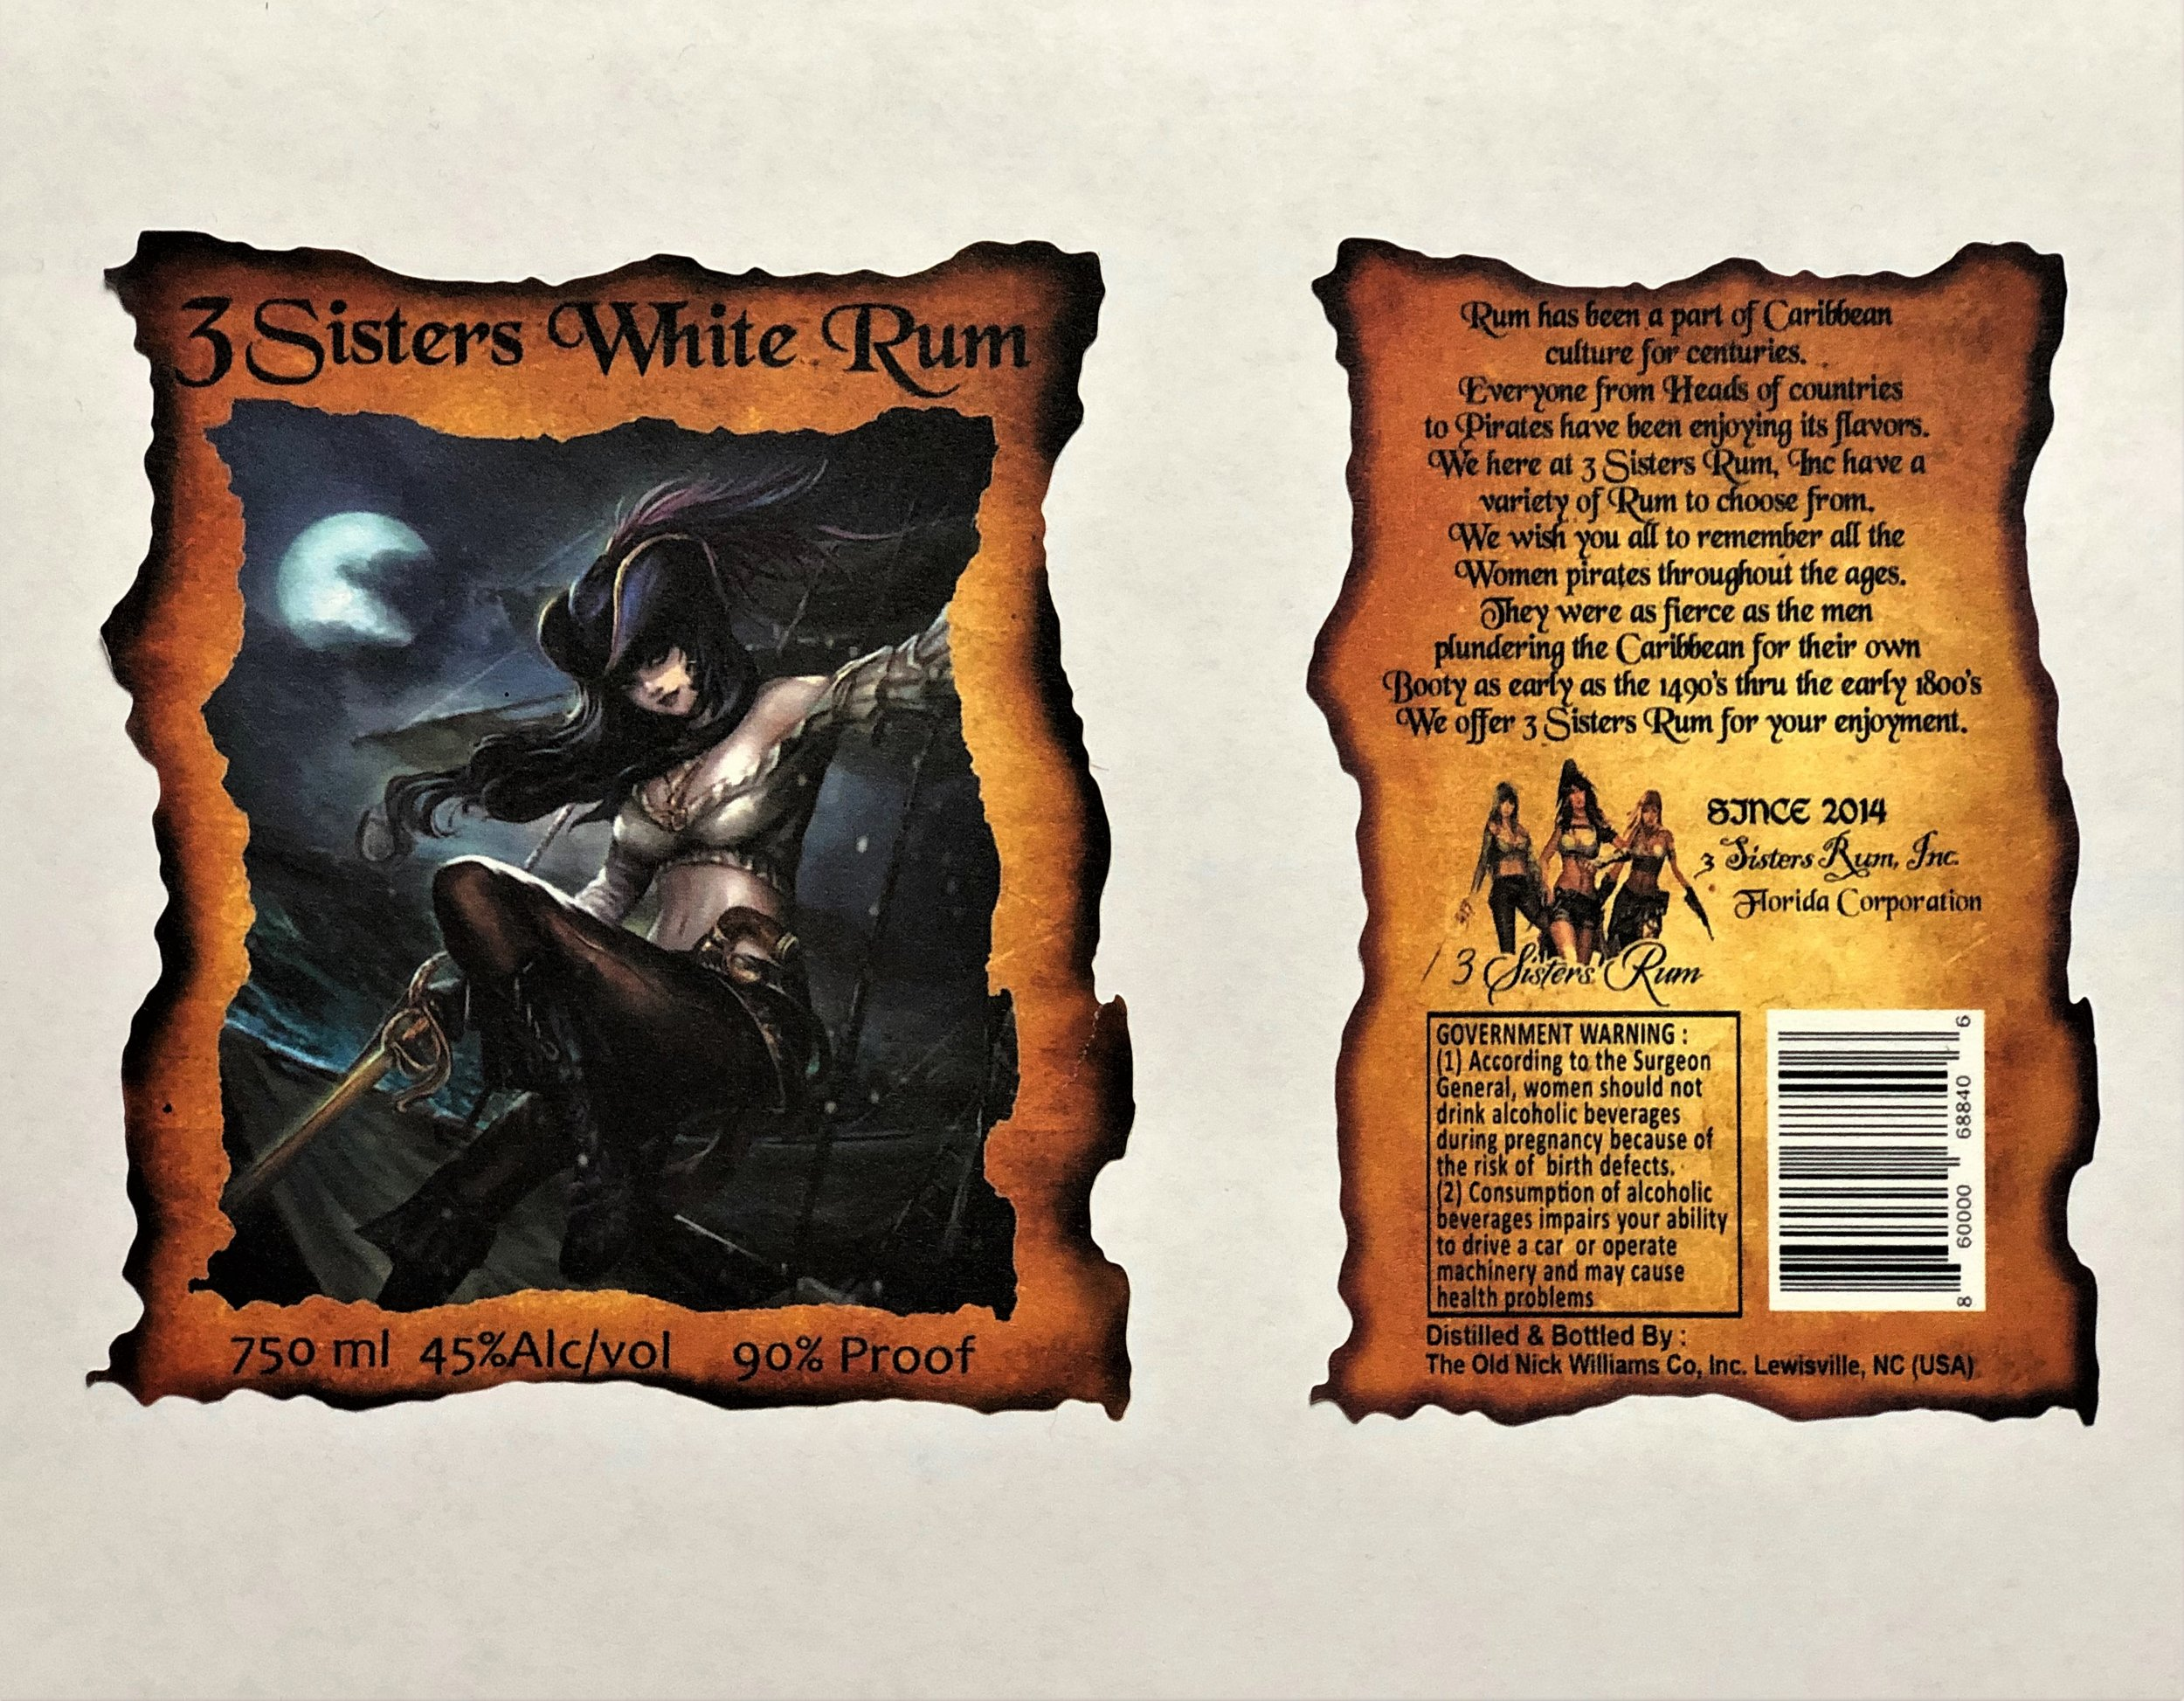 3 Sisters White Rum Label